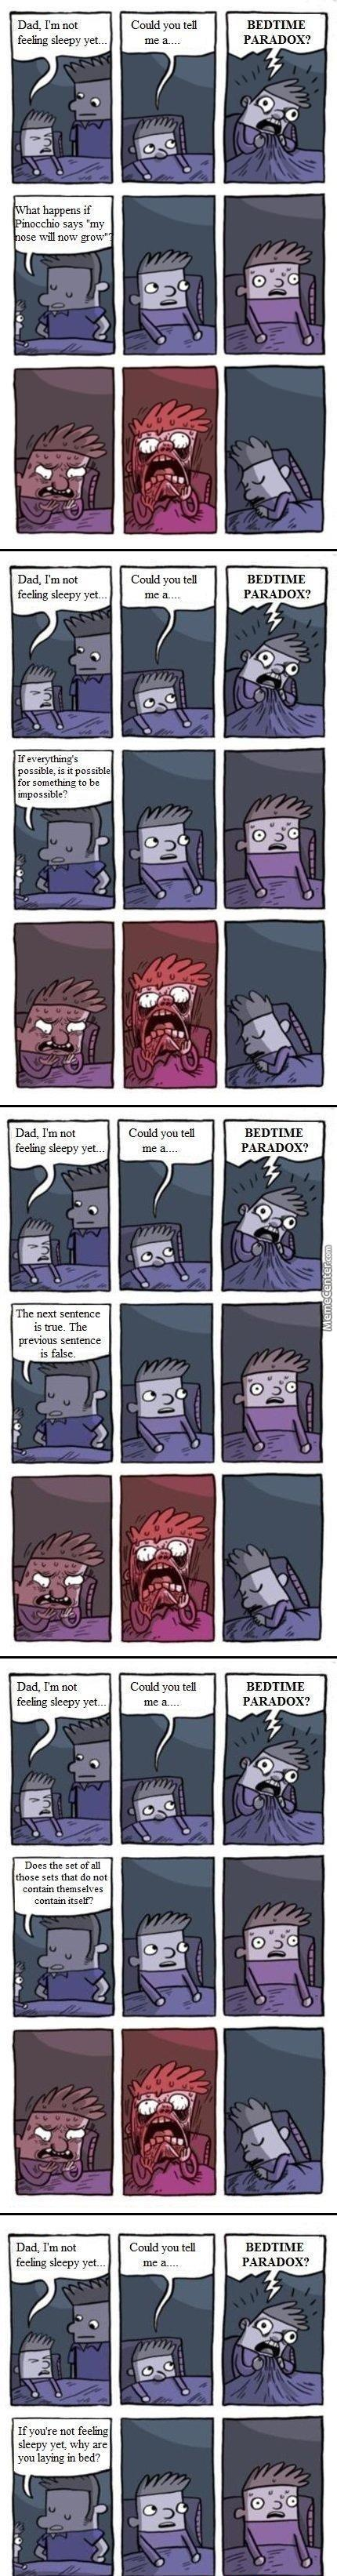 A Collection Of Bedtime Paradoxes